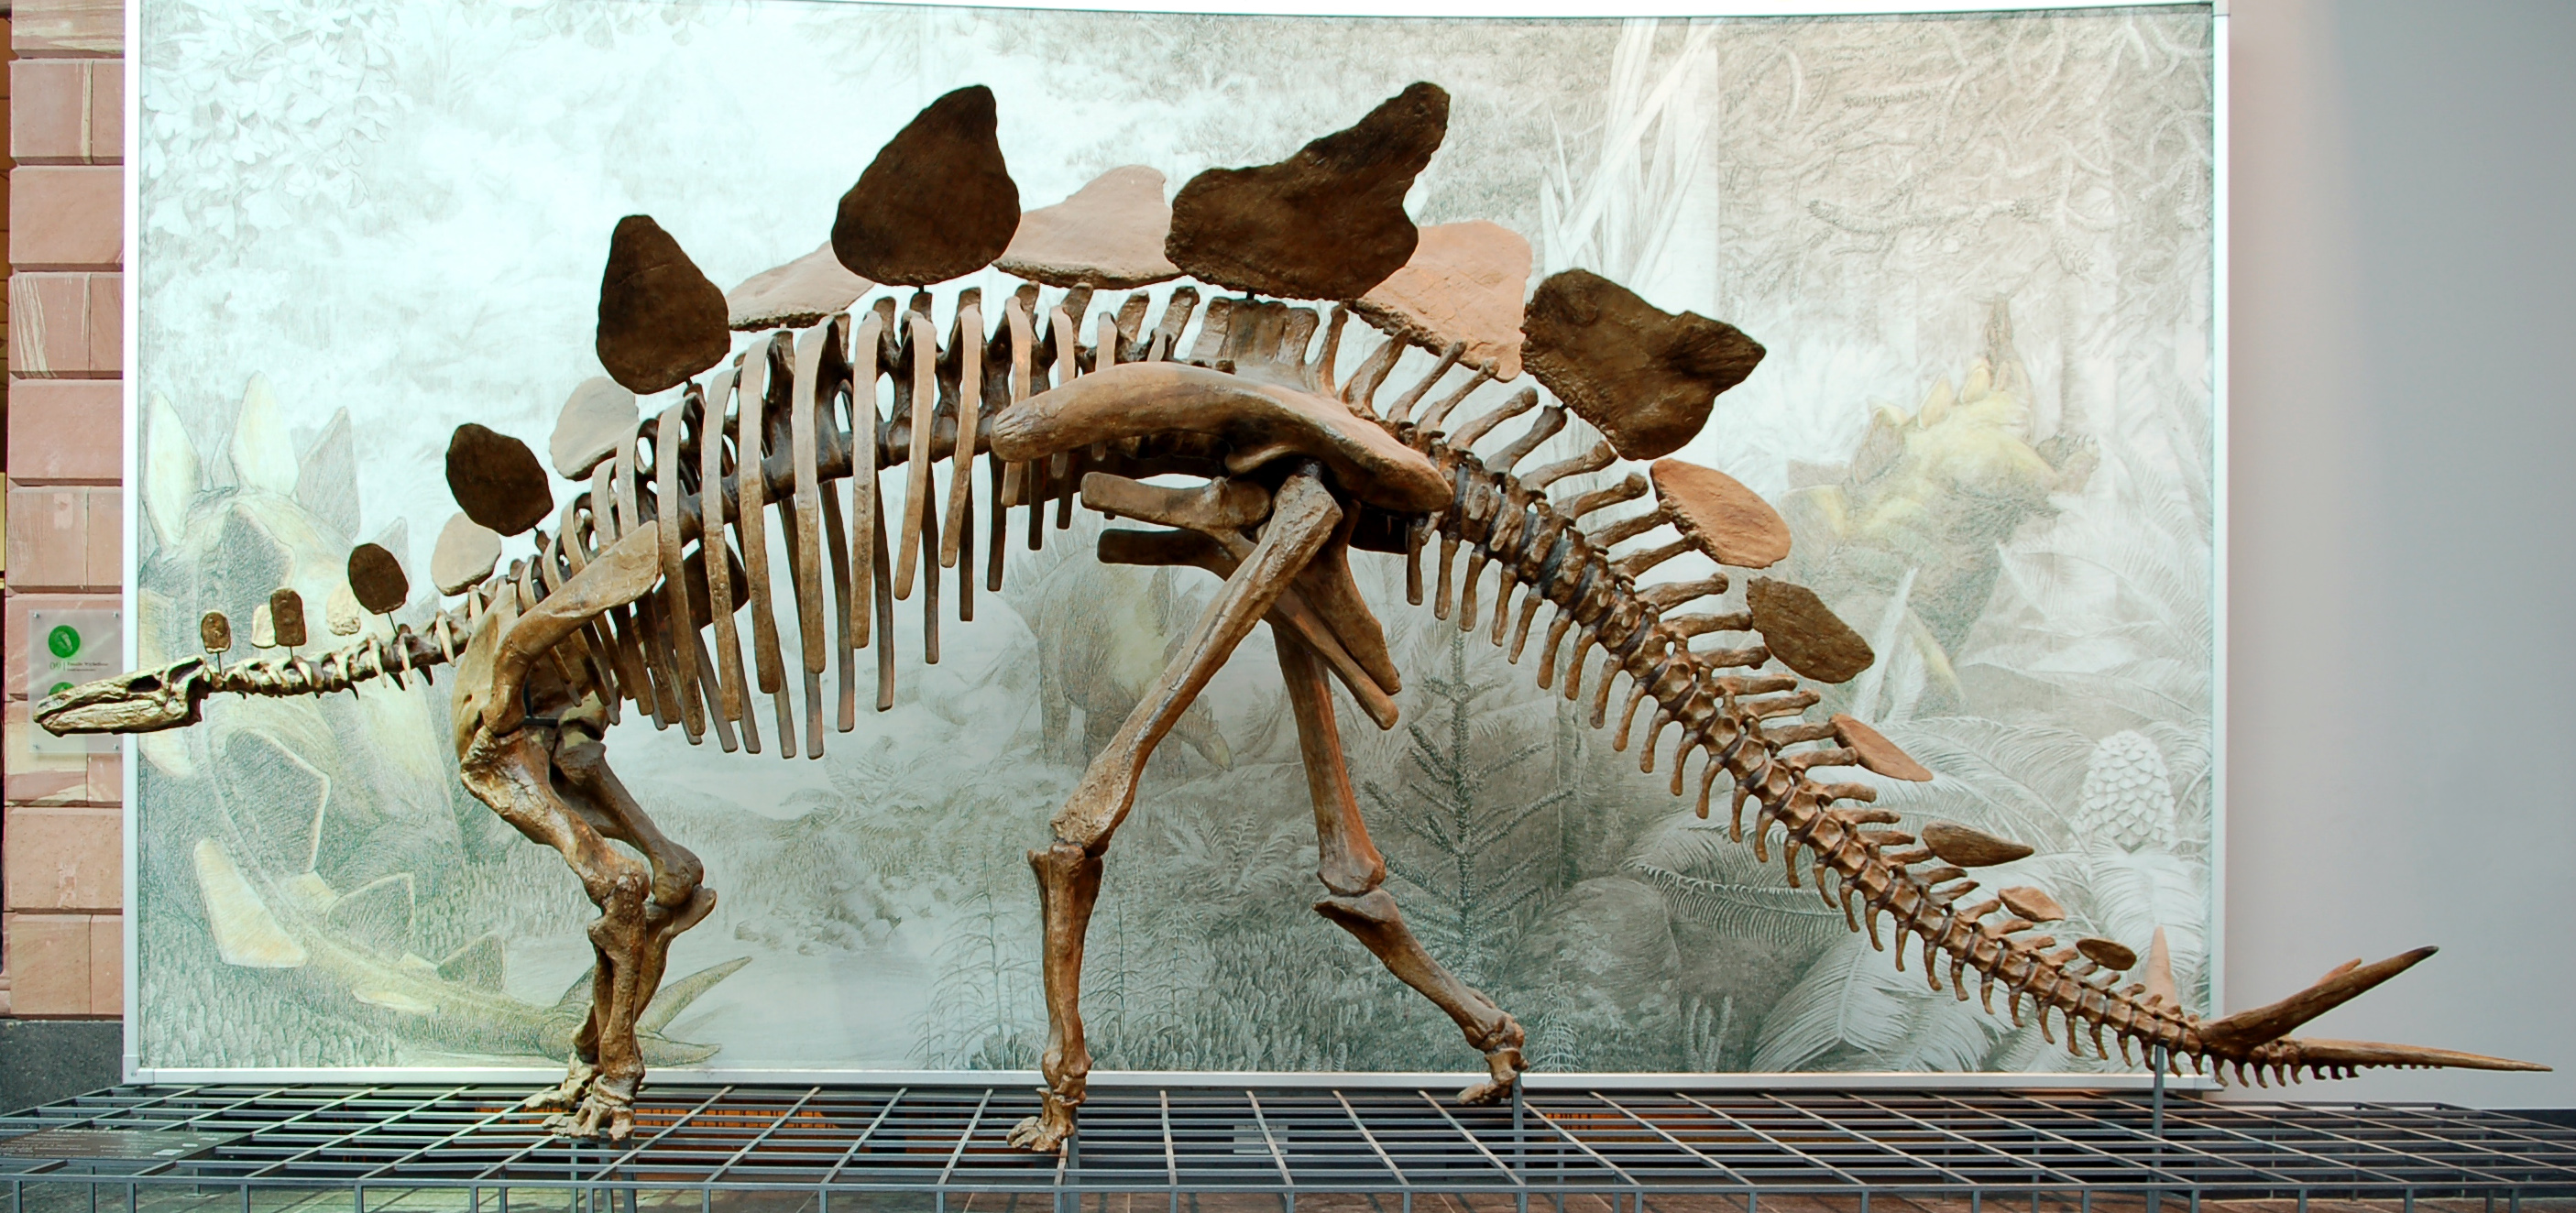 Take A Look At A Fossilized Stegosaurus,